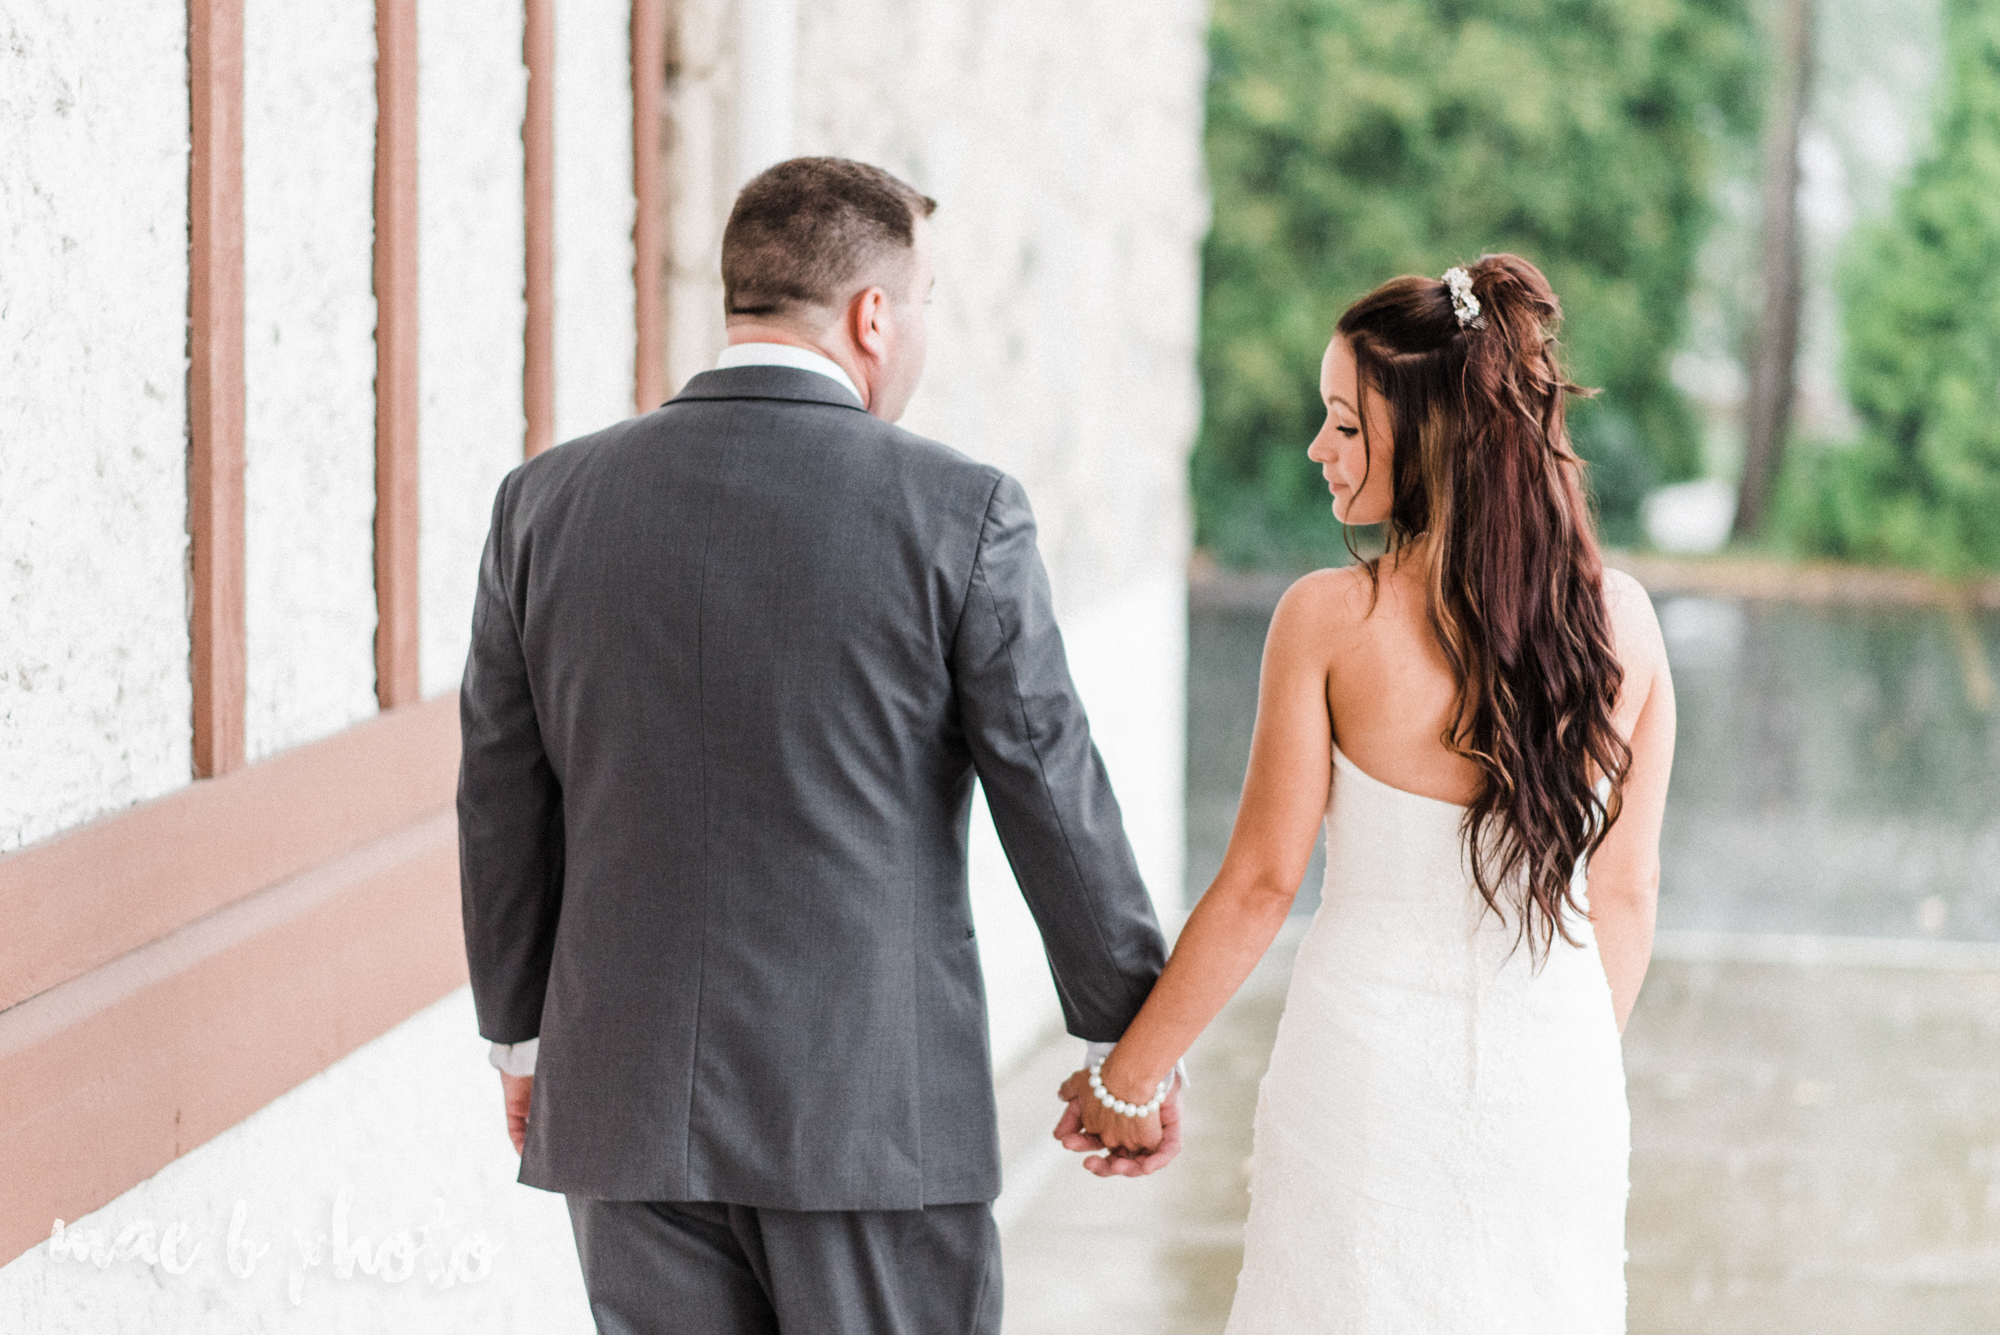 kristy and matt's summer wedding at the embassy in youngstown ohio photographed by youngstown wedding photographer mae b photo-21.jpg